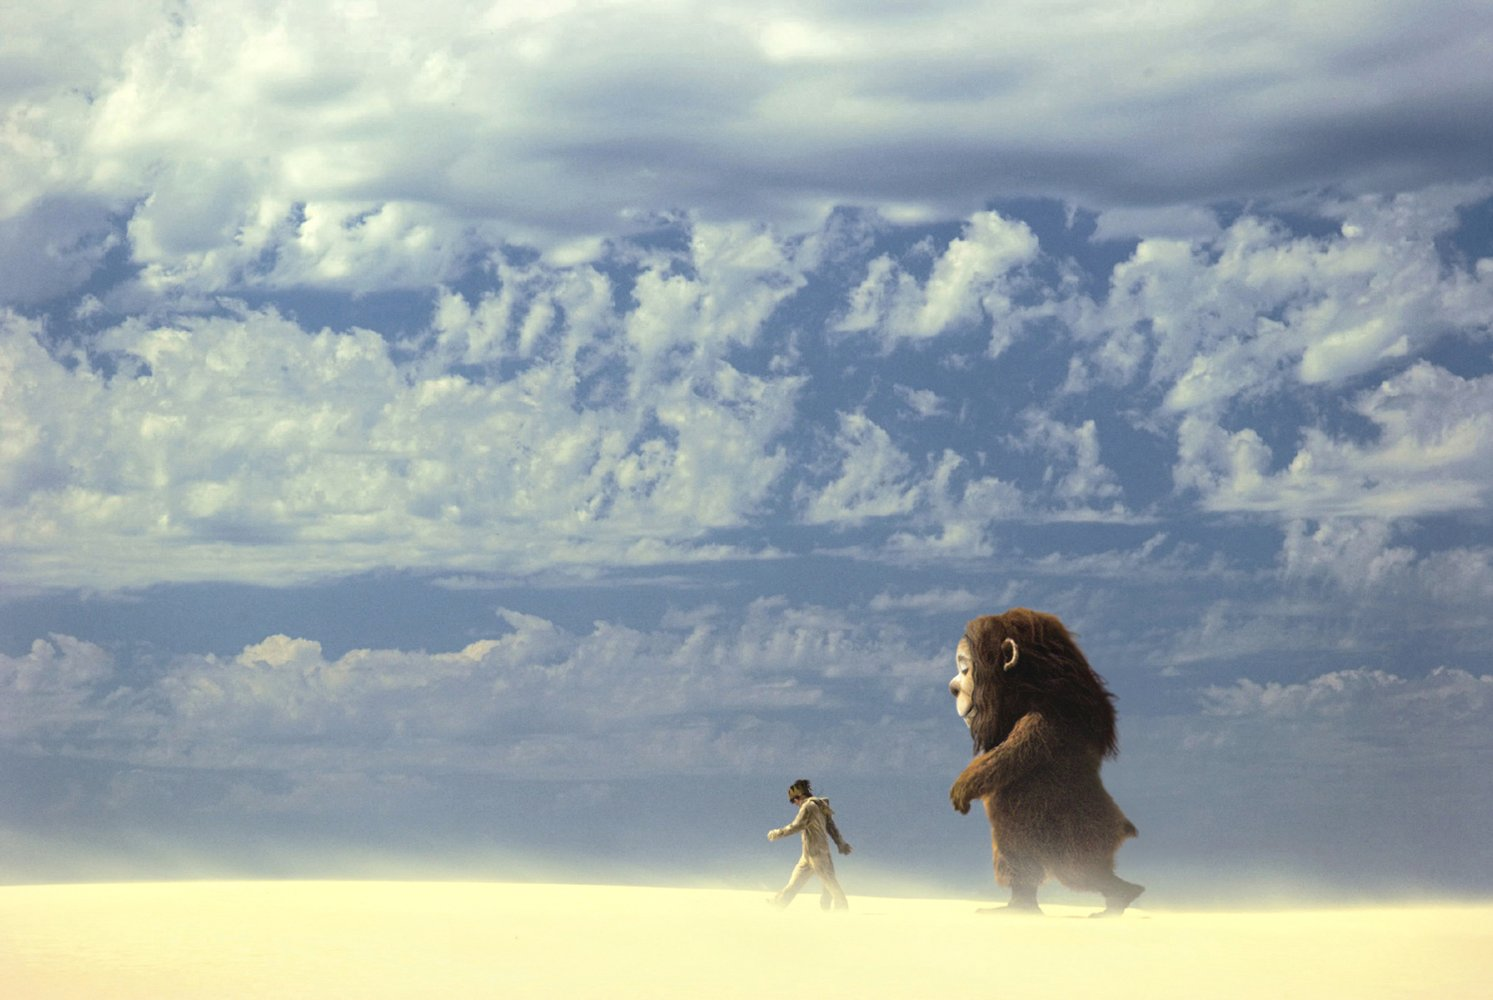 Where the Wild Things Are (2009) | Warner Bros.